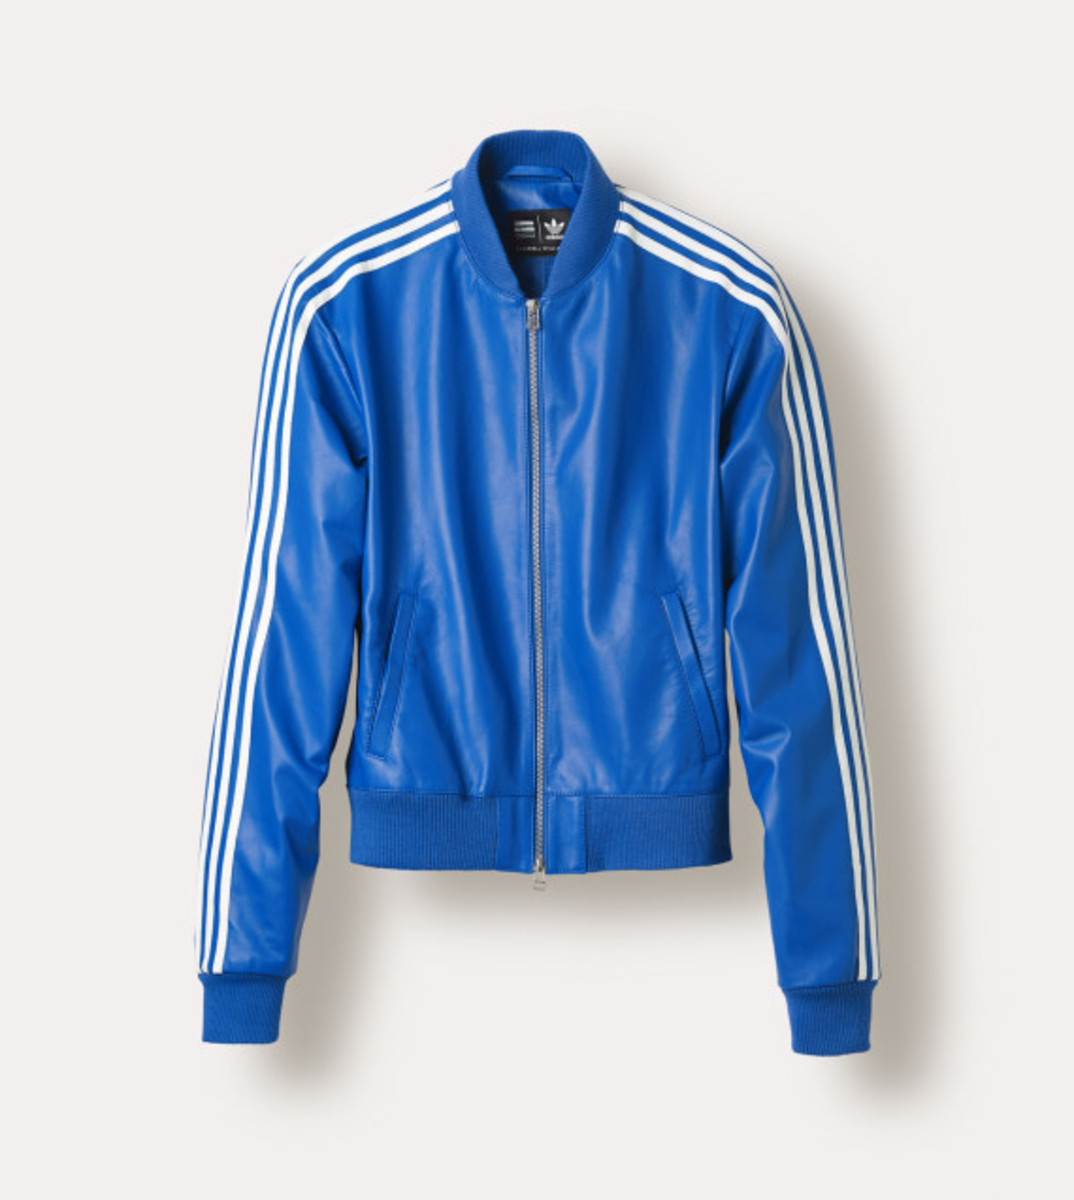 adidas-originals-pharrell-williams-officially-unveiled-25